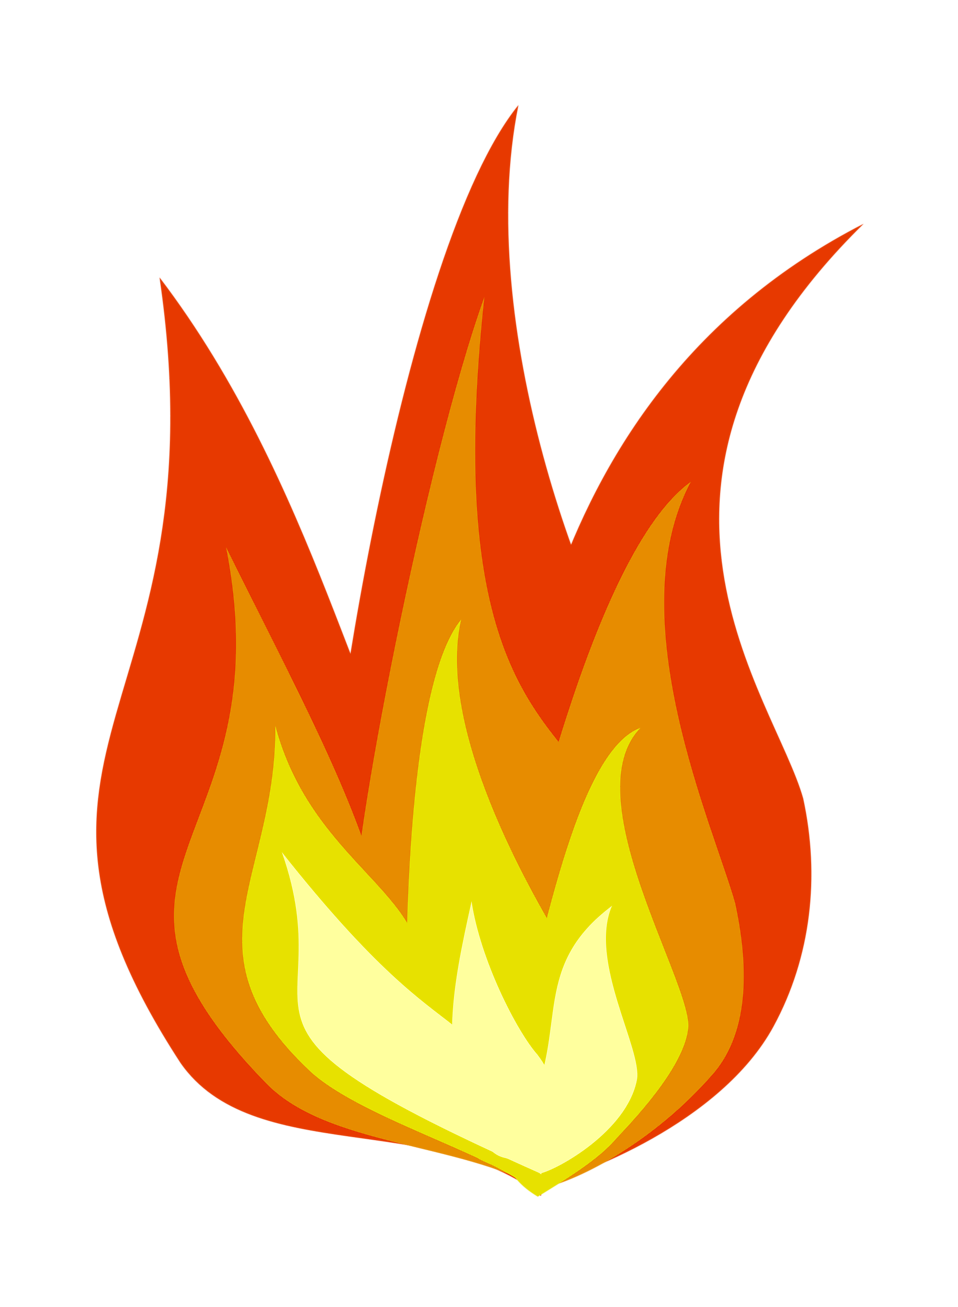 clipart flames of fire - photo #8